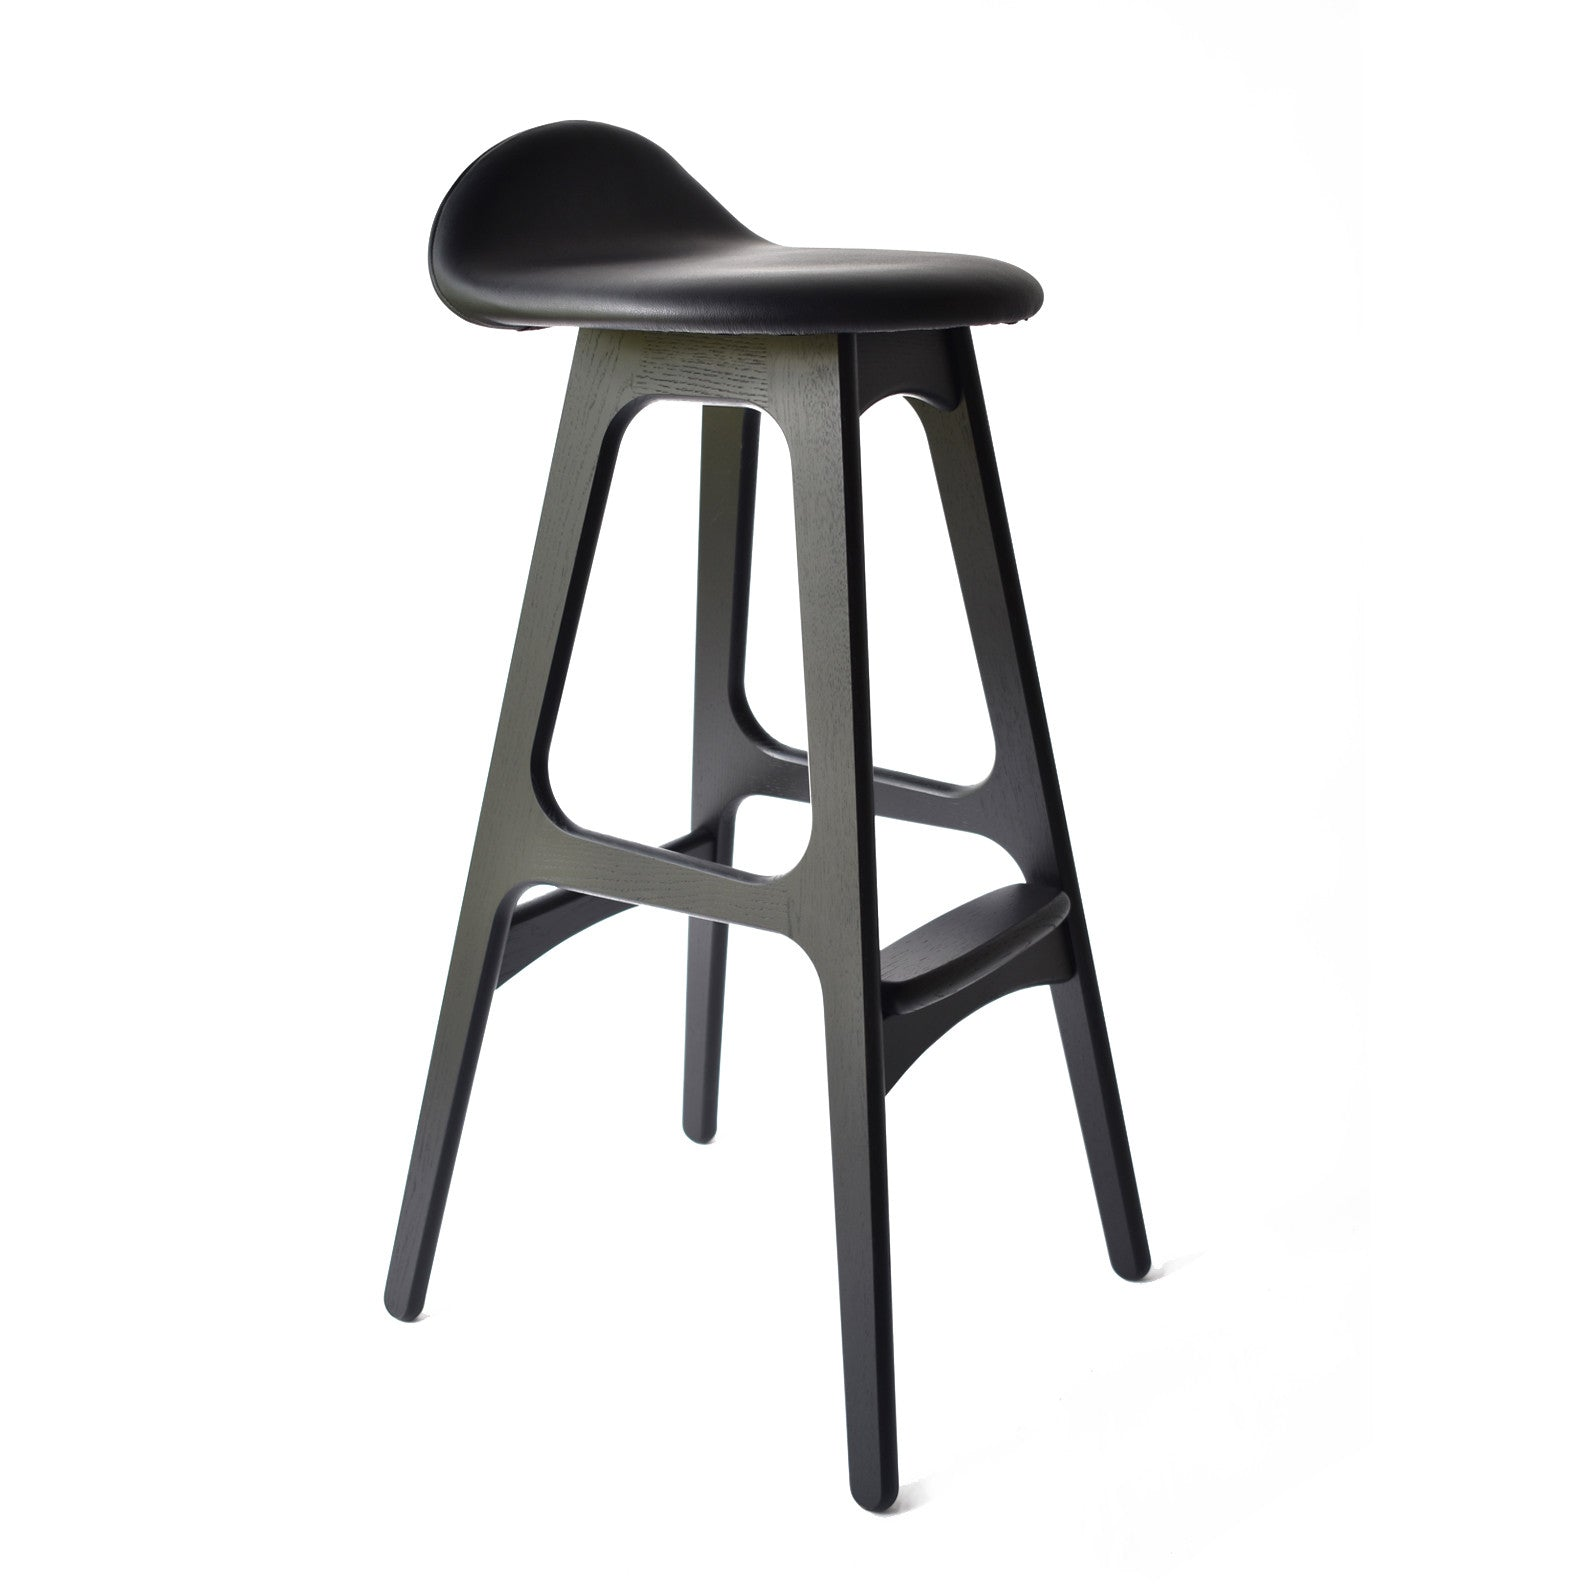 Stupendous Erik Buch Model 61 Stools Uwap Interior Chair Design Uwaporg